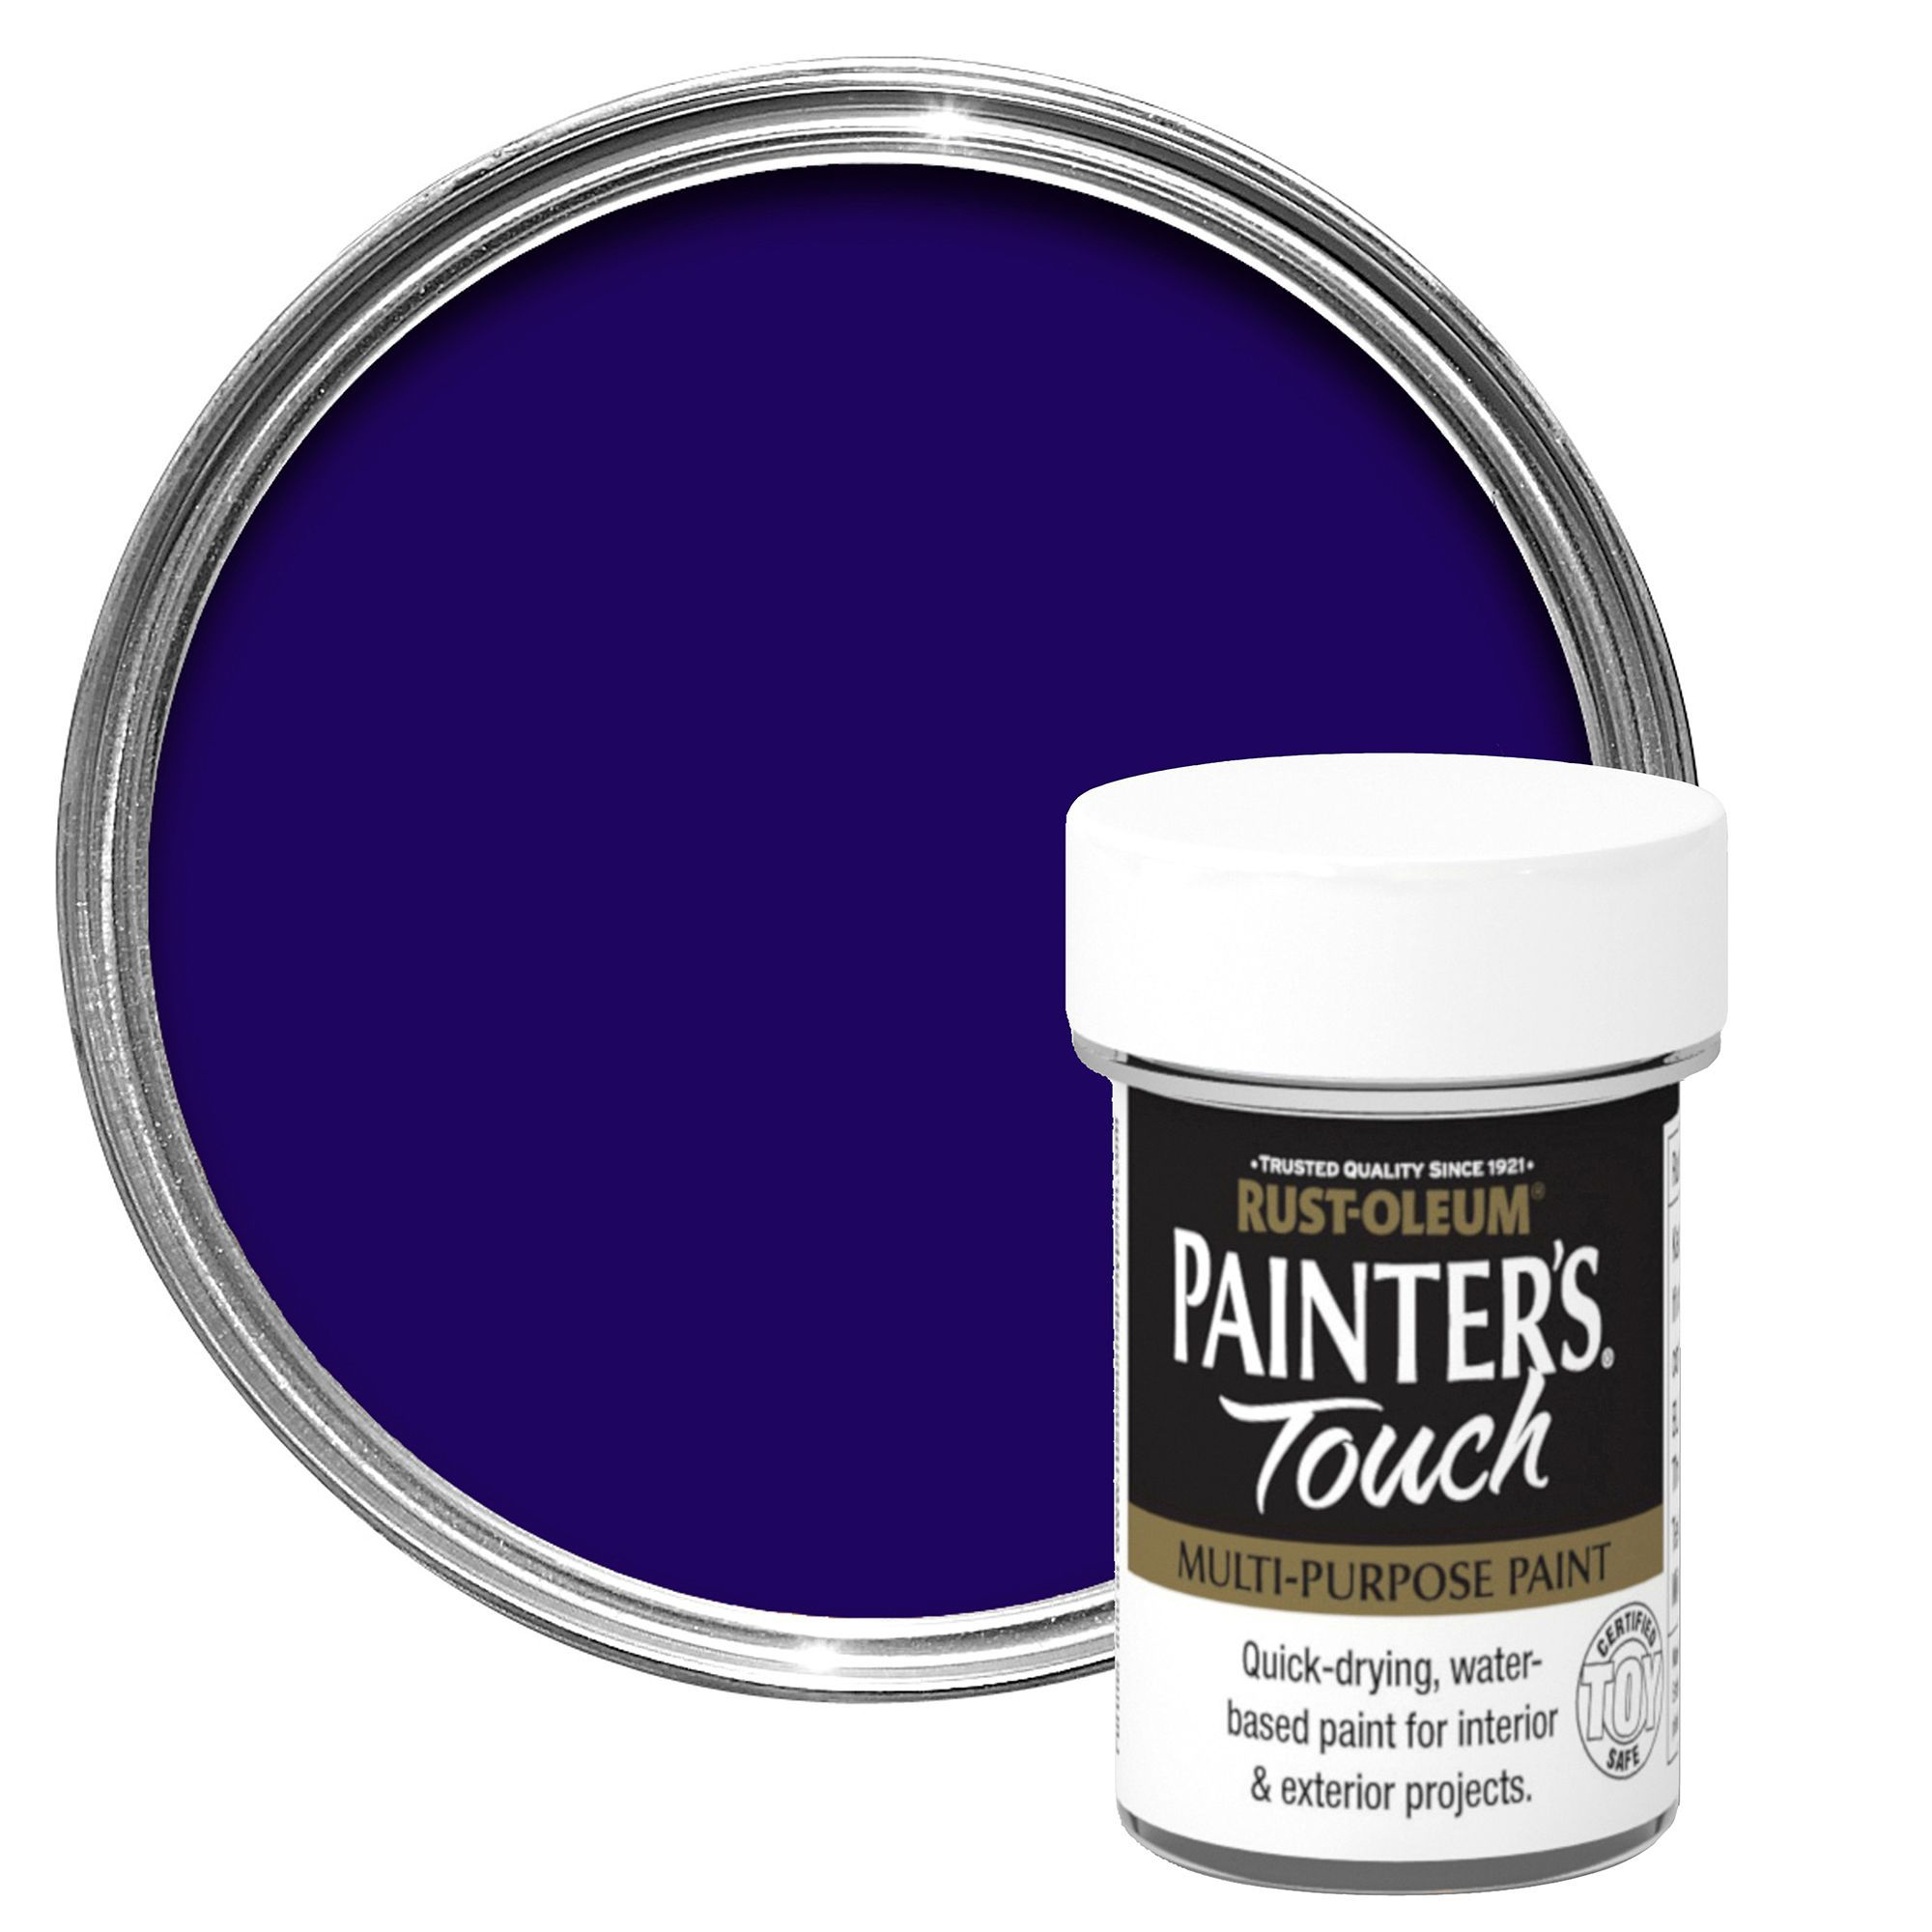 Purple-Exterior-Gloss-Paint. Rust Oleum Painters Touch Interior Exterior Indigo Gloss Multipurpose Paint 20ml Departments Diy At Bq